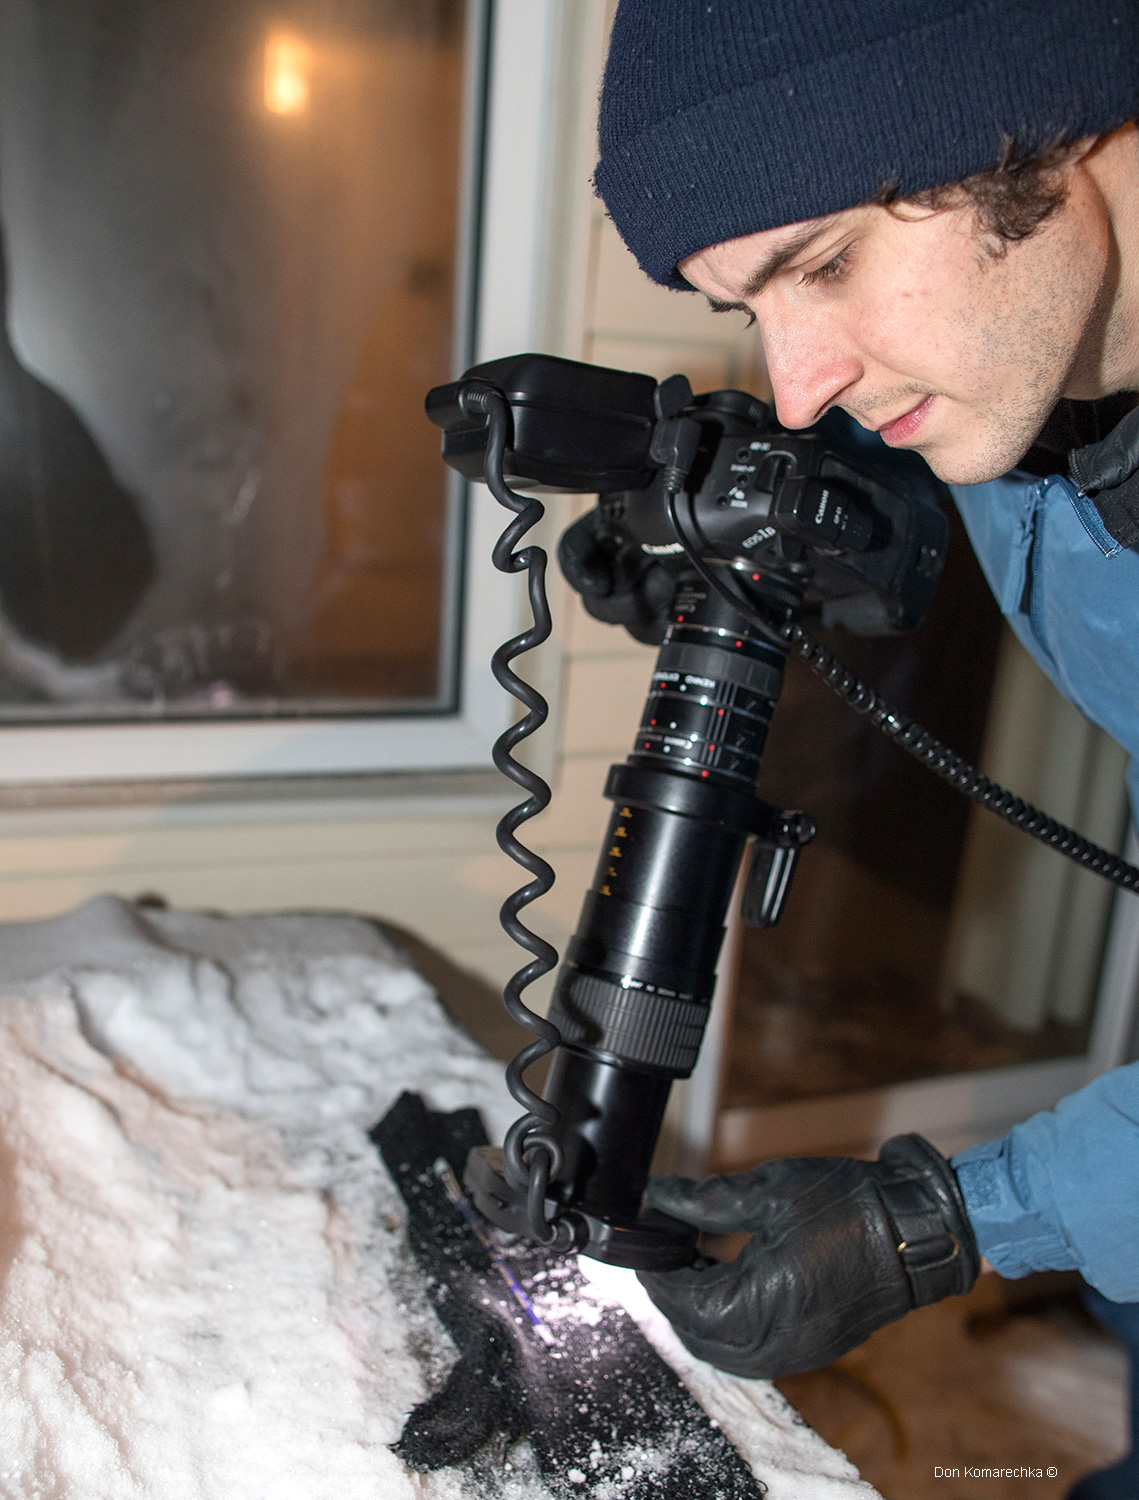 Photographing snow crystals with a Canon MP-E-65mm Macro lens Don Komarechka ©